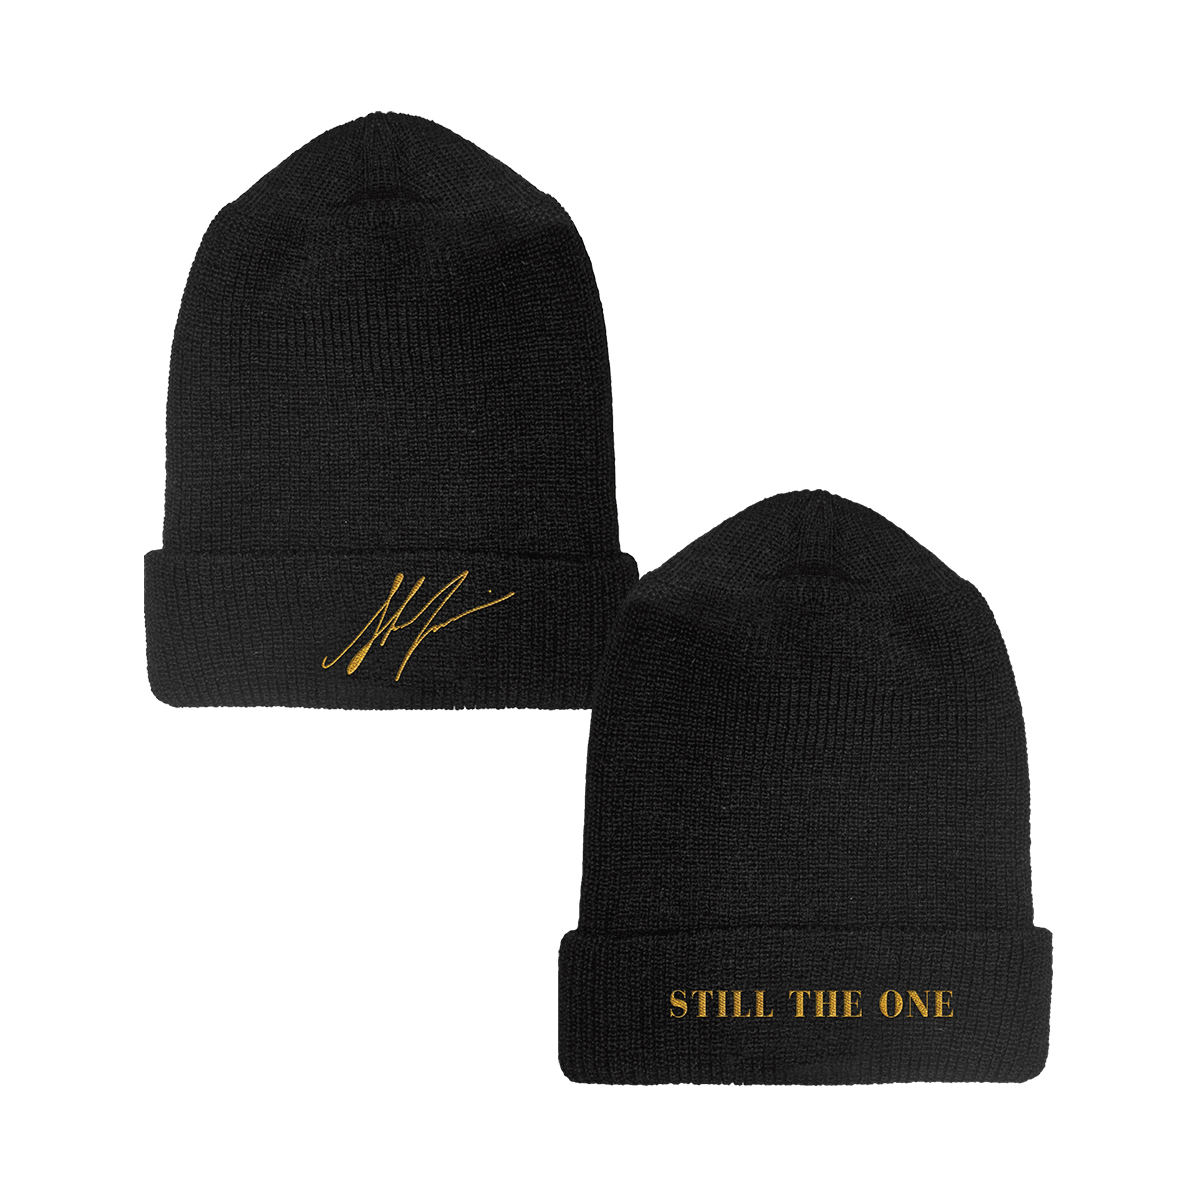 Still The One Beanie